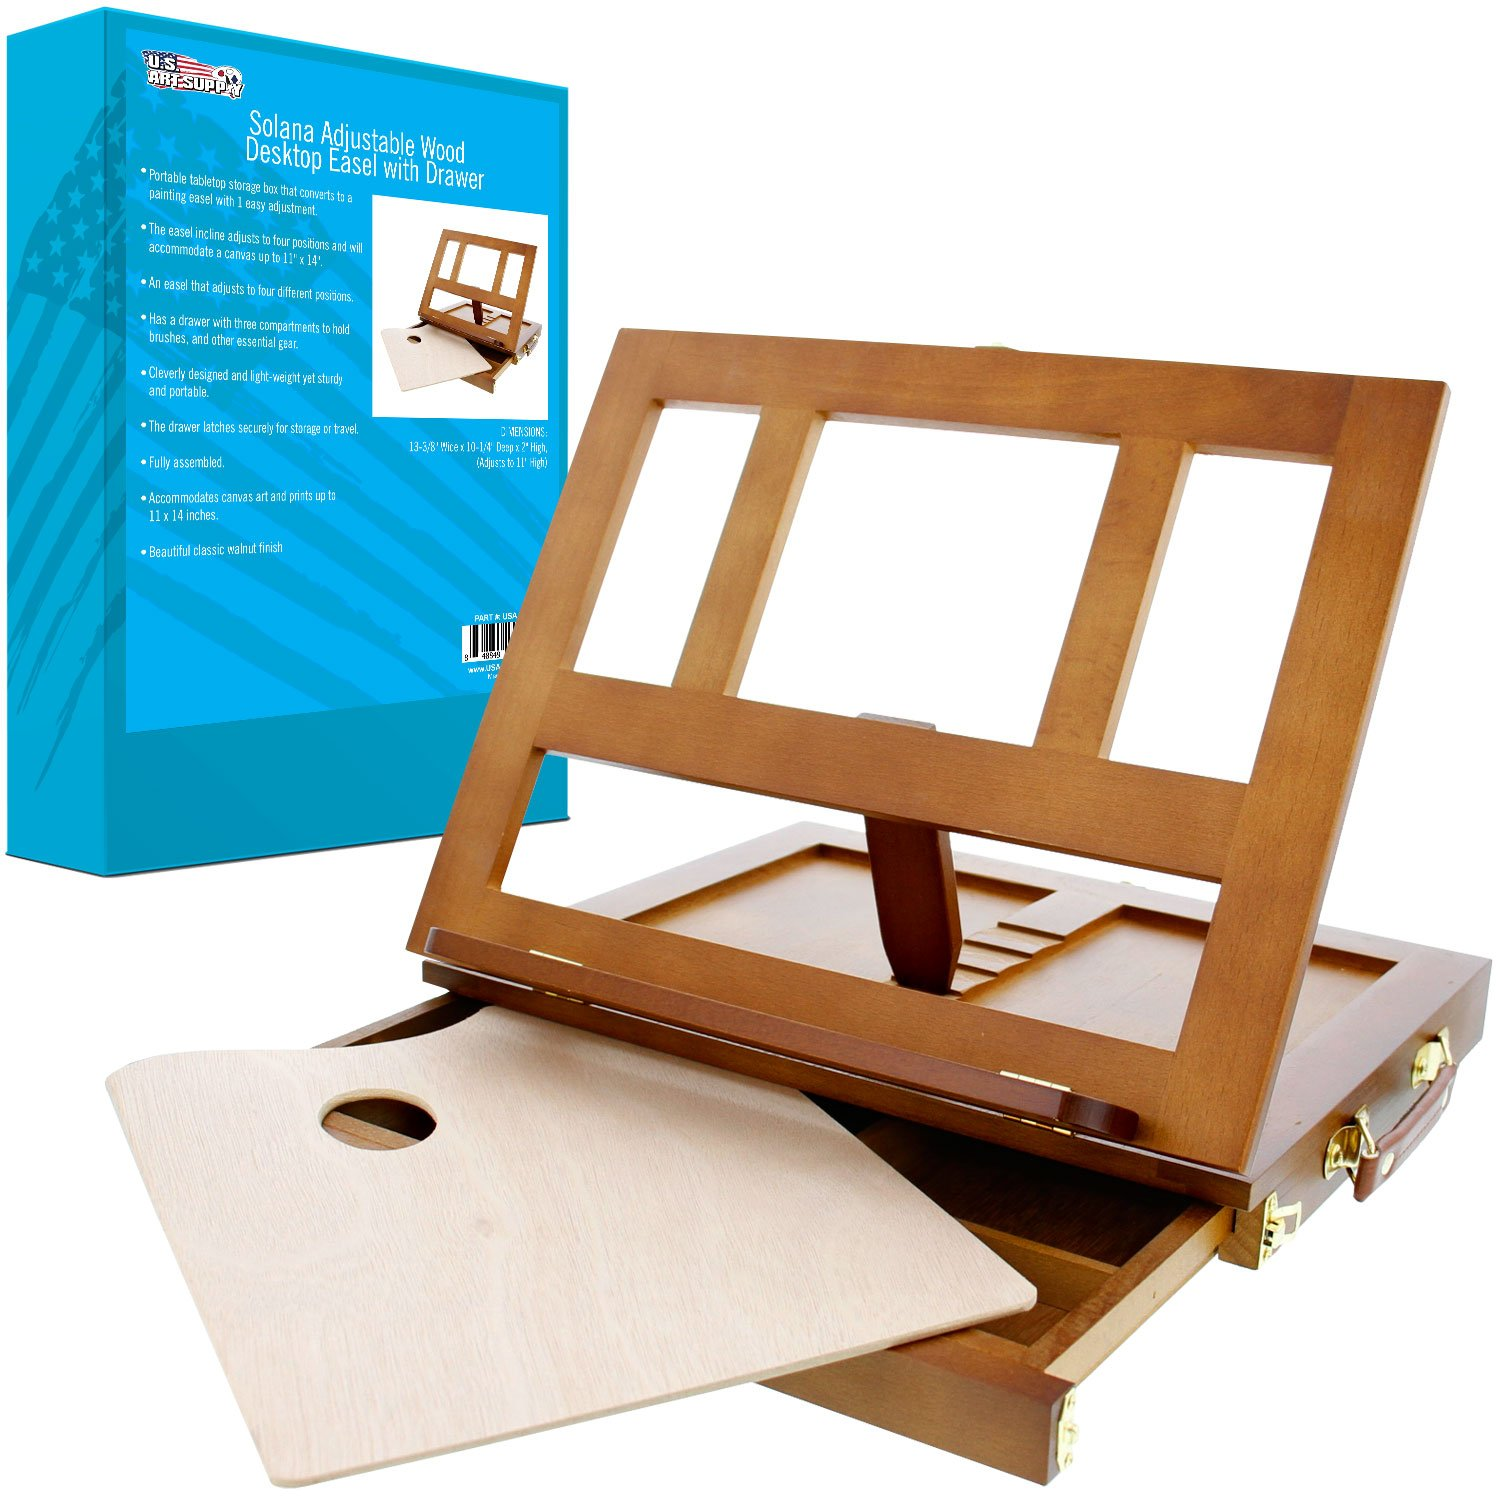 U.S. Art Supply Walnut Solana Adjustable Wood Desk Table Easel with Storage Drawer, Paint Palette, Premium Beechwood - Portable Wooden Artist Desktop, Board for Canvas, Painting, Drawing, Book Stand by US Art Supply